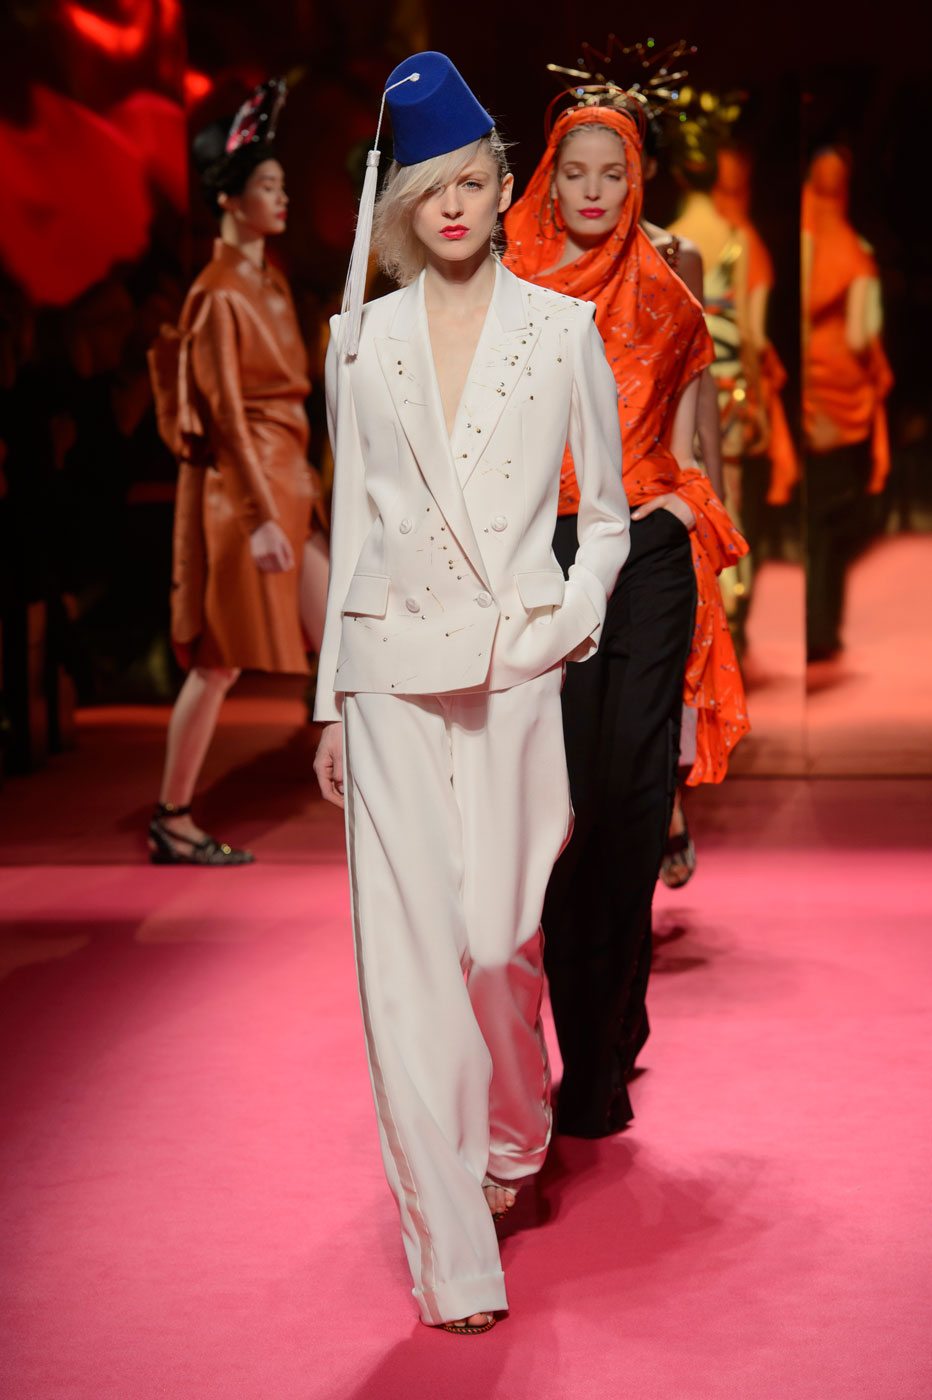 Schiaparelli-fashion-runway-show-haute-couture-paris-spring-summer-2015-the-impression-49